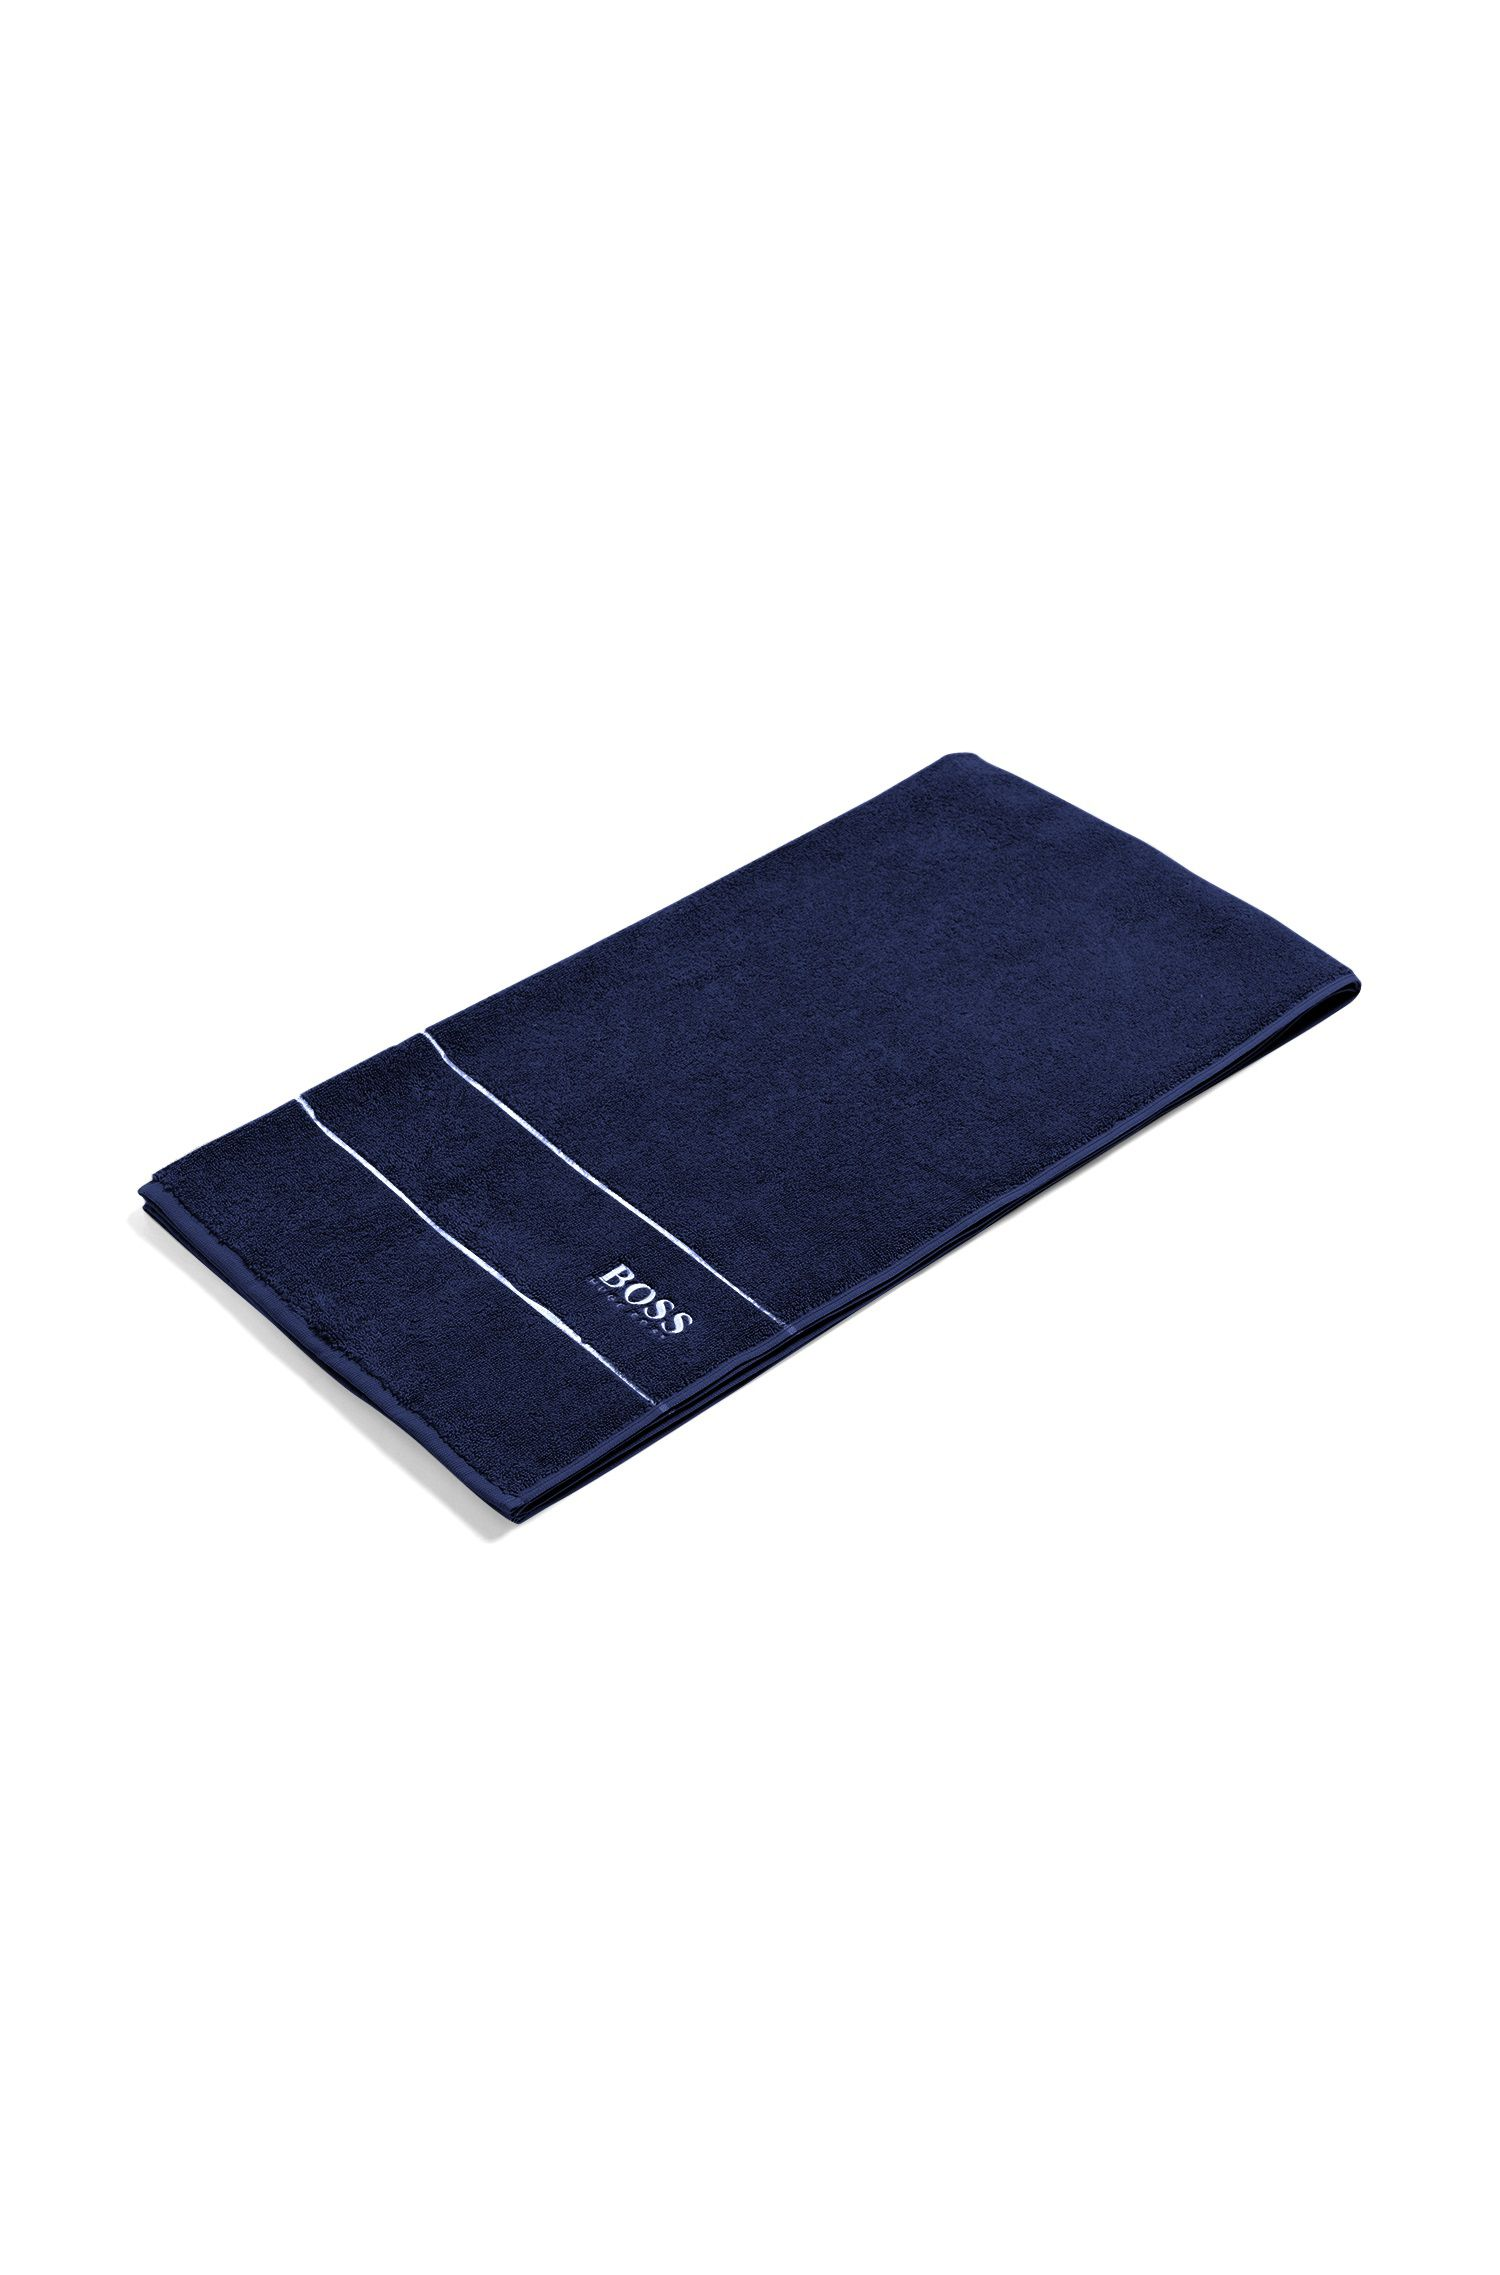 Finest Egyptian cotton bath towel with logo border